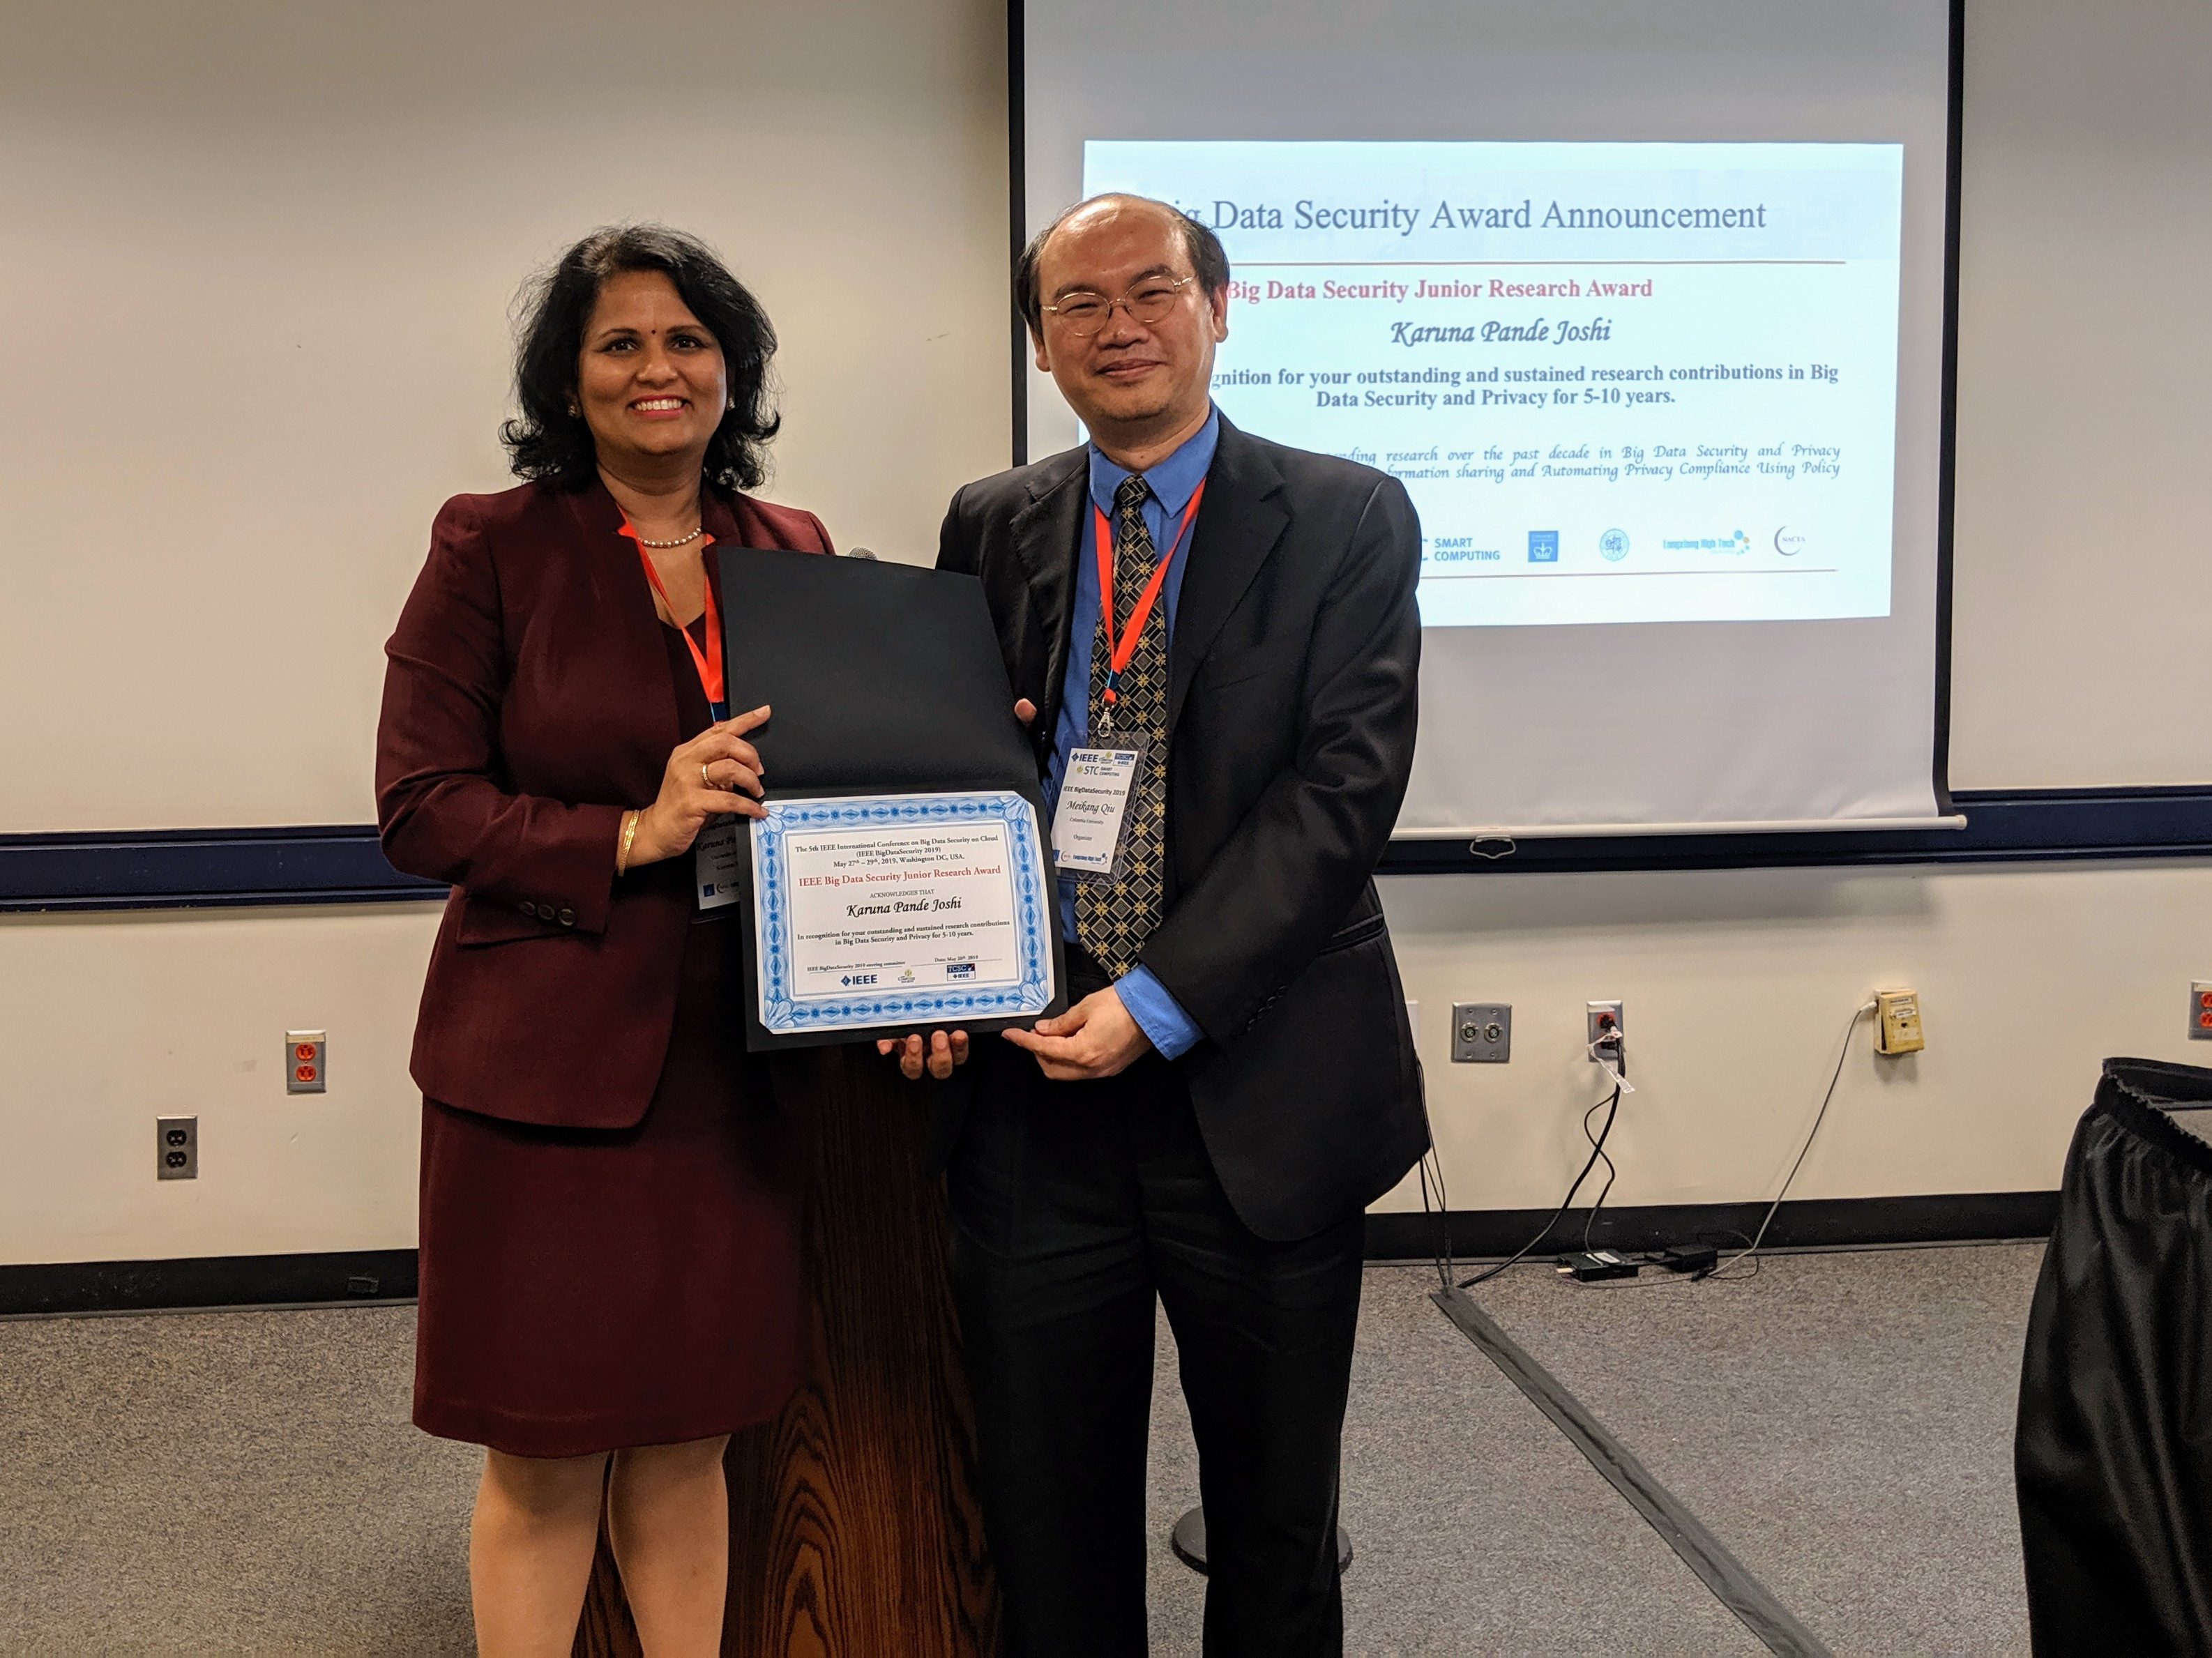 Prof. Joshi receives IEEE Big Data Security Junior Research award